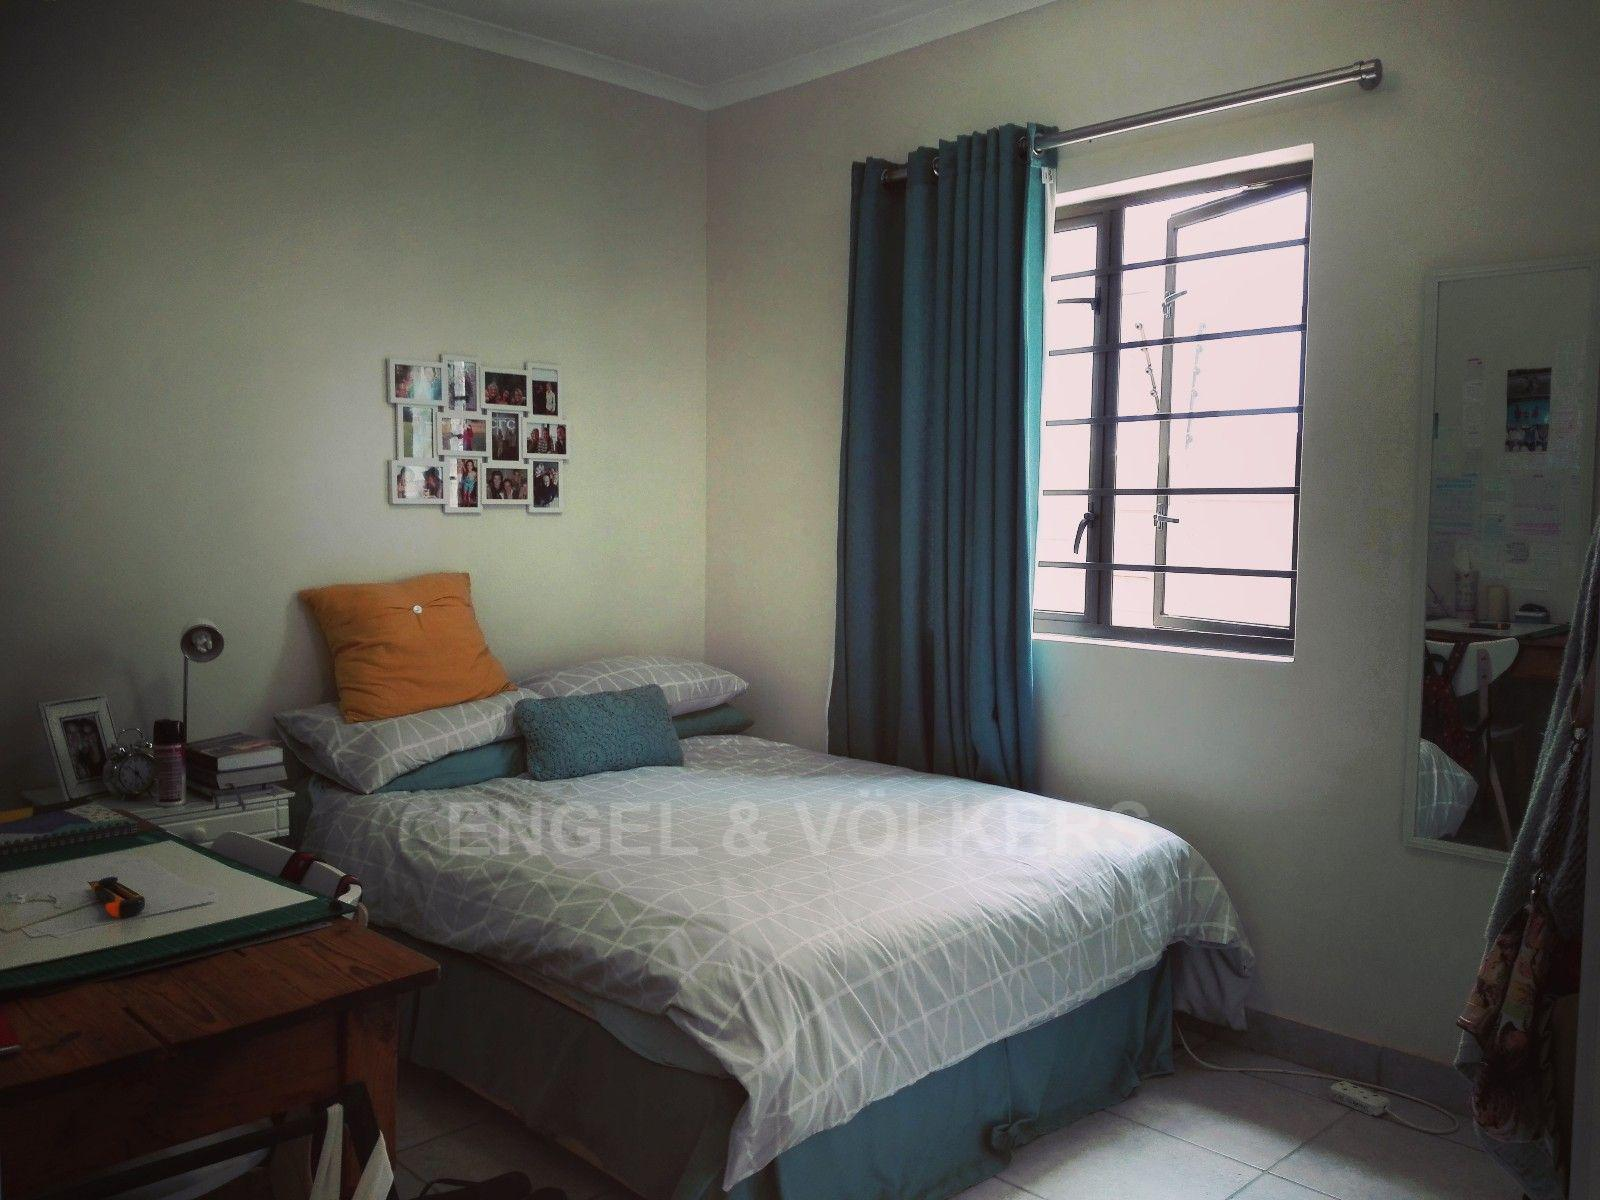 Potchefstroom Central property for sale. Ref No: 13451927. Picture no 19